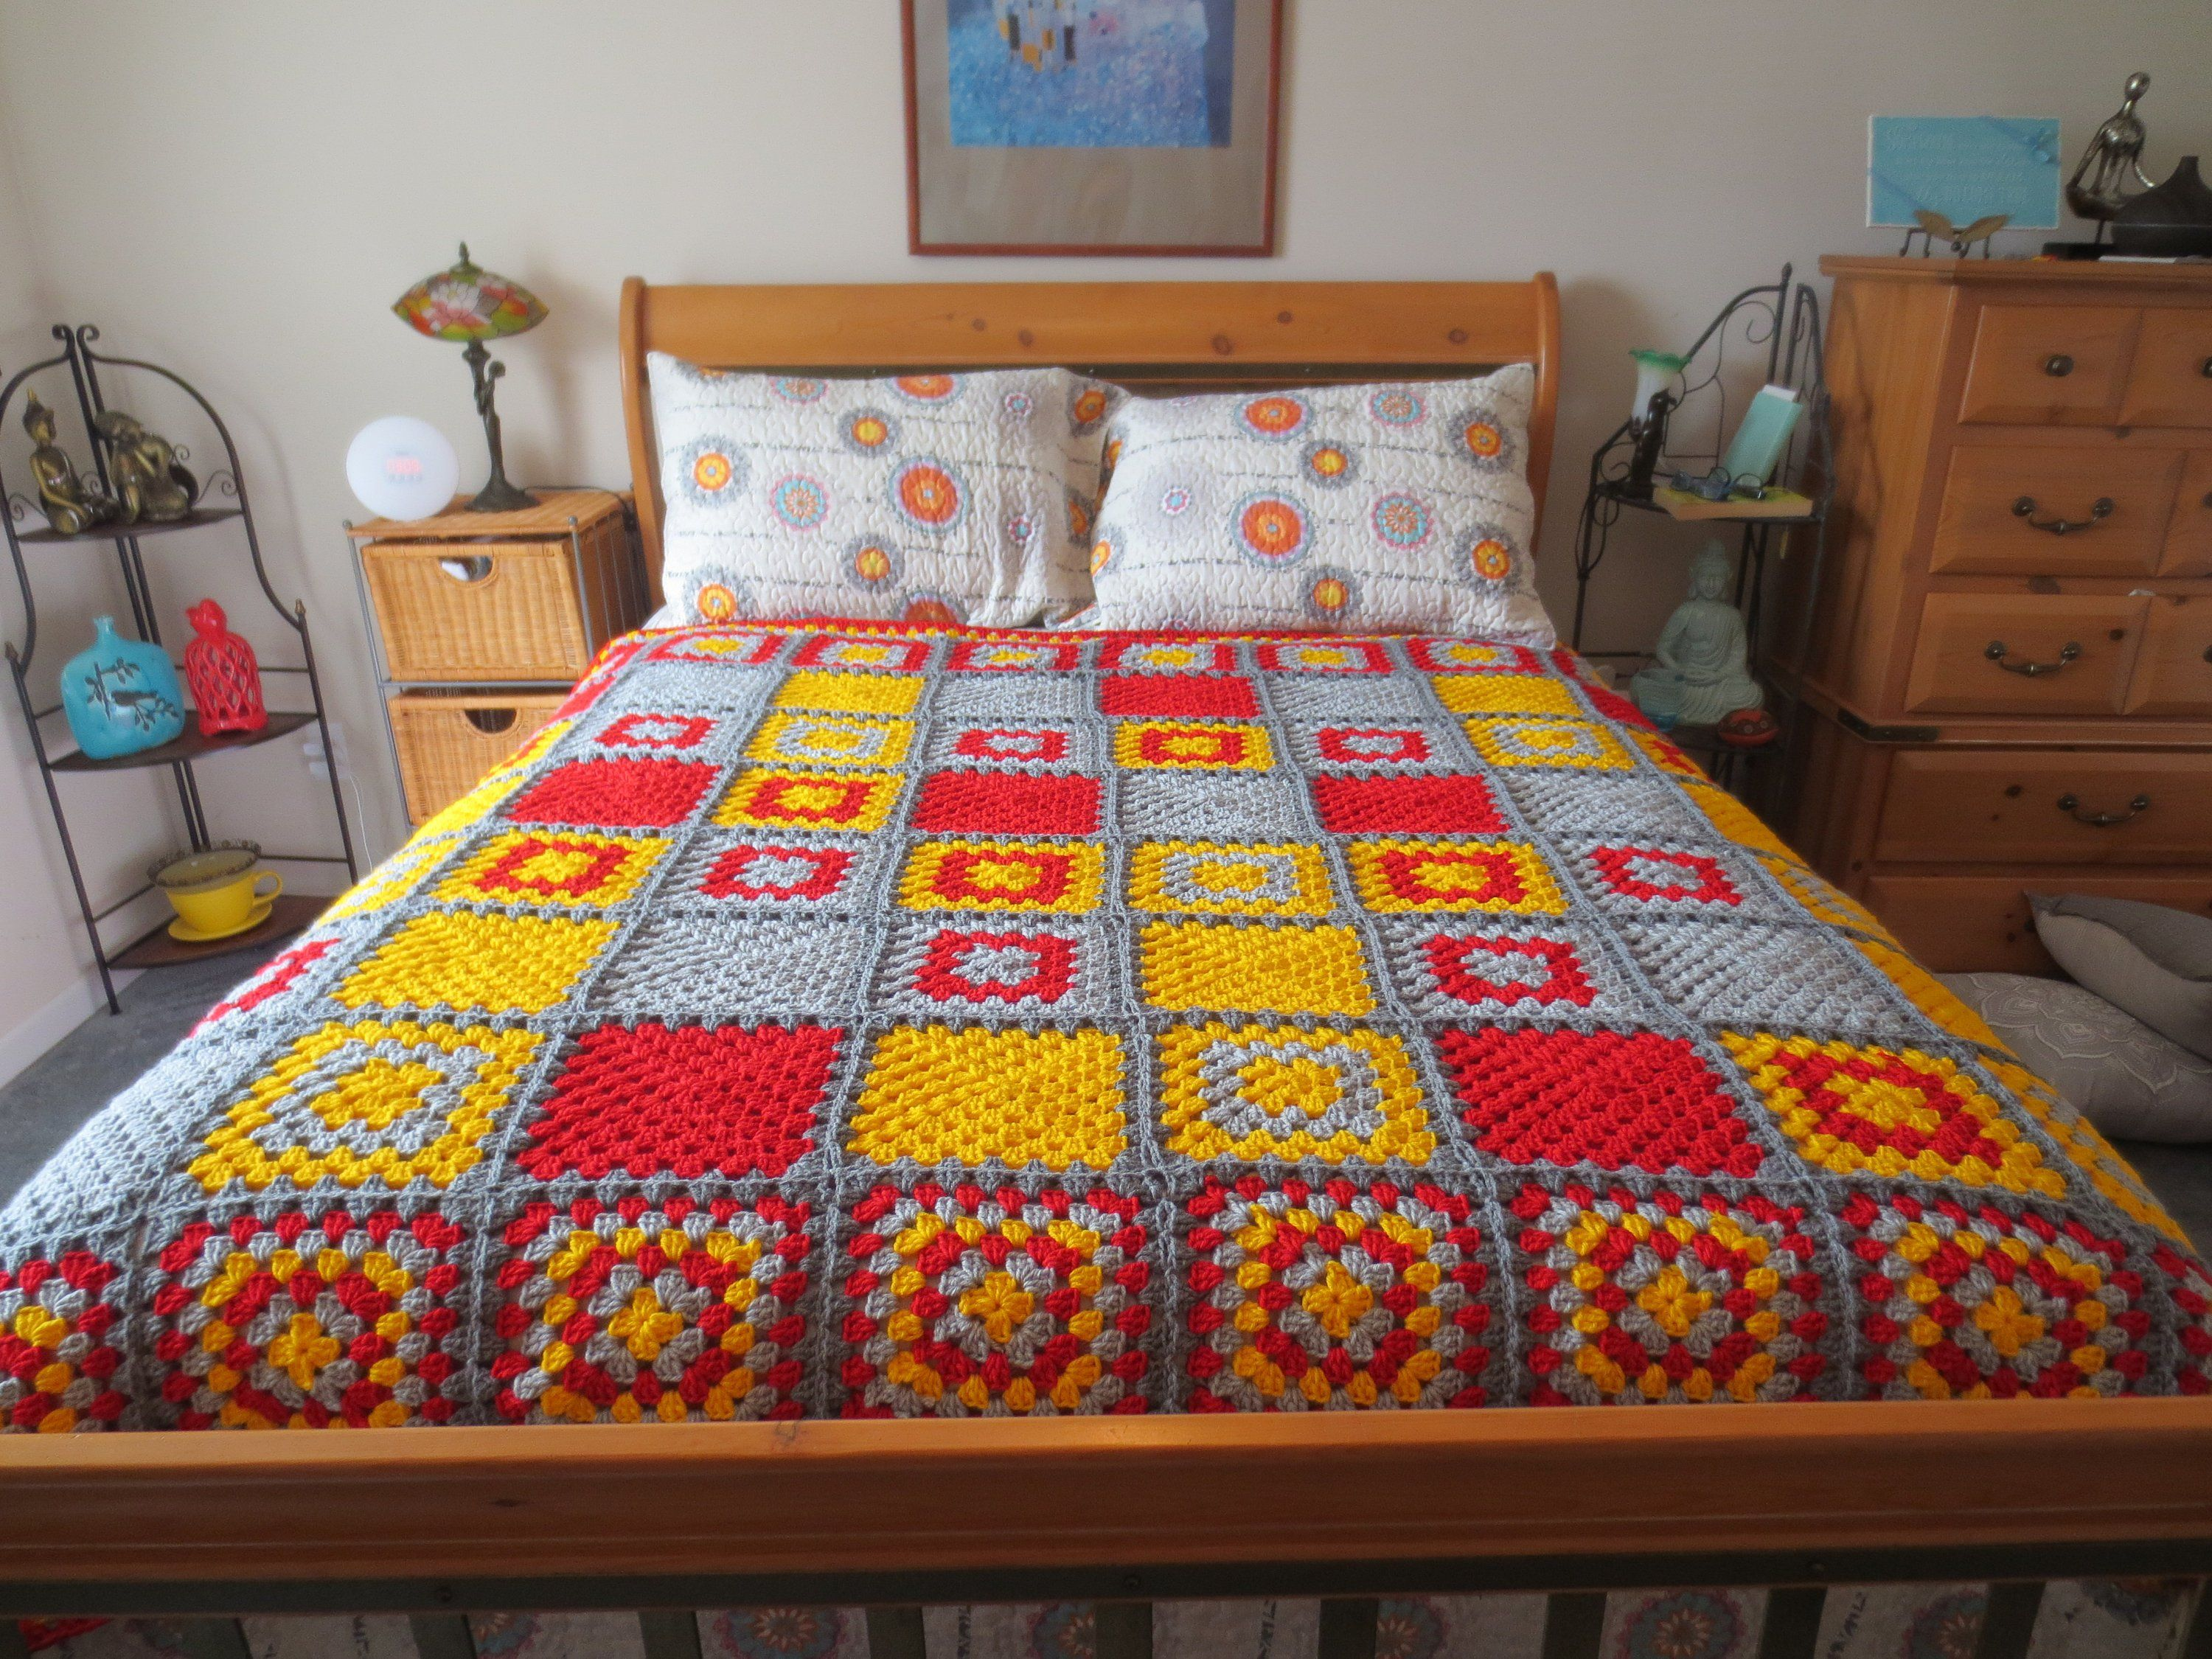 Crochet Red, Yellow and Gray Blanket, 68.5 x 68.5 in, Full